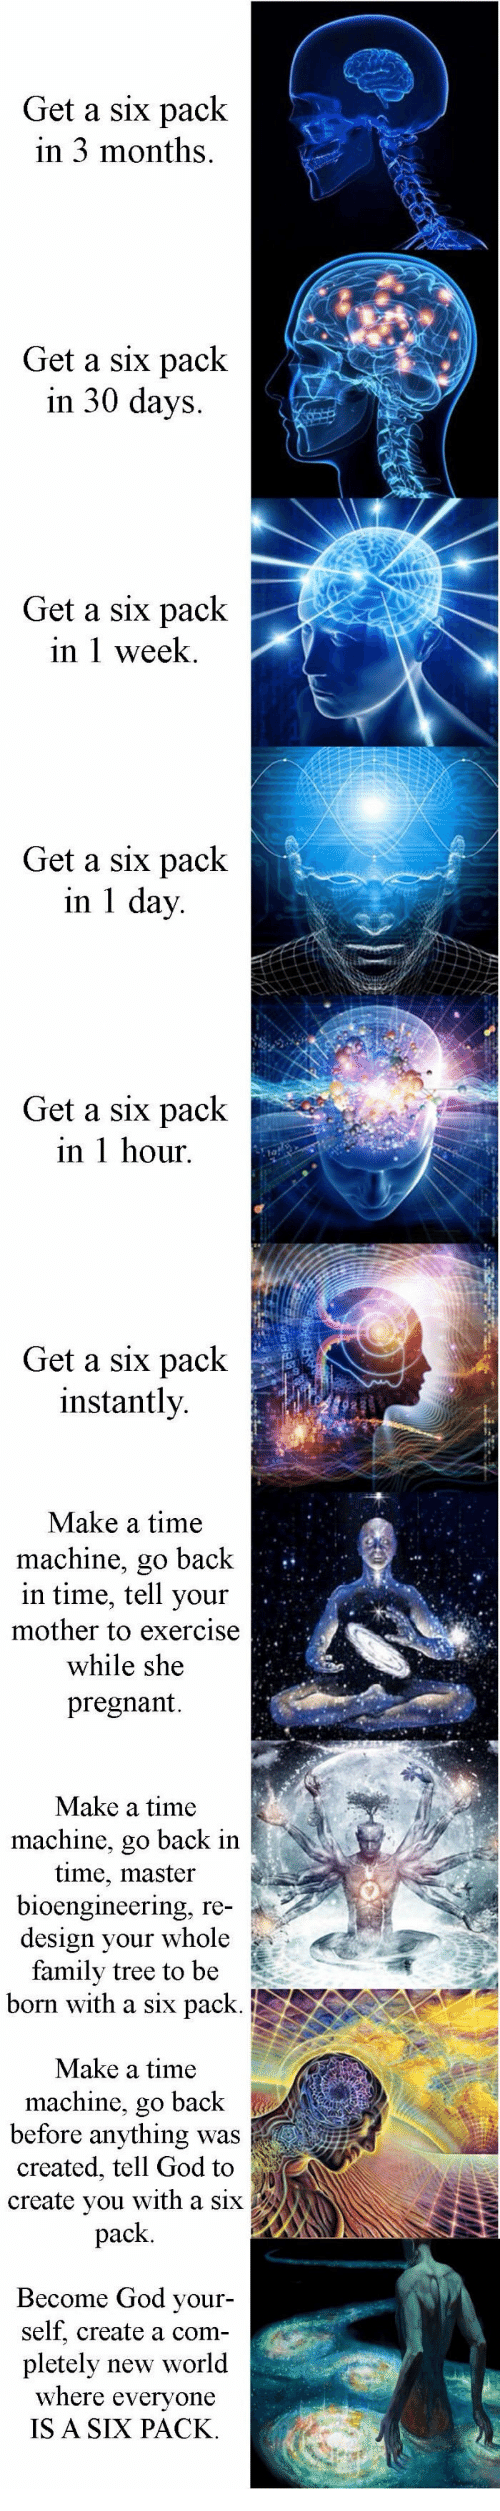 how to get a six pack instantly